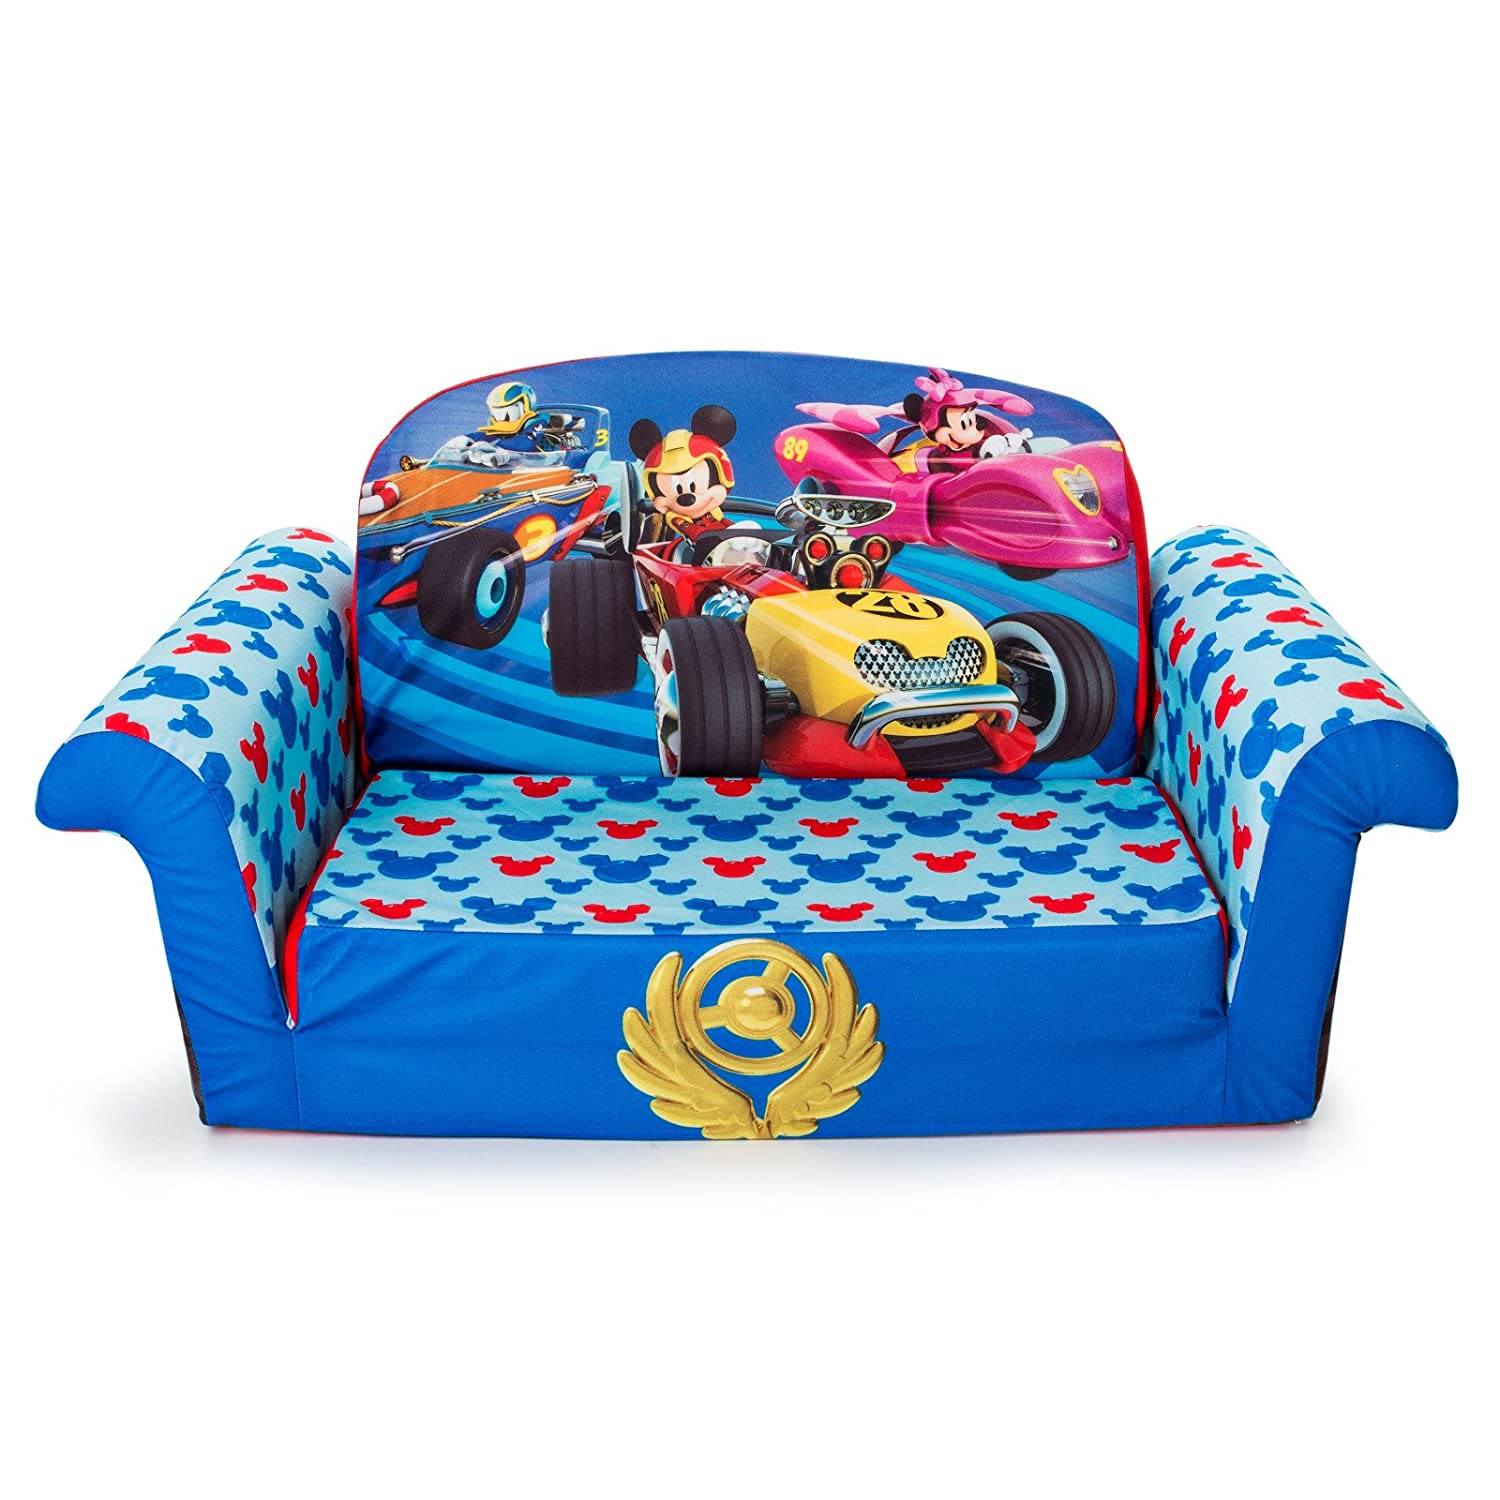 Swell Marshmallow Furniture Childrens 2 In 1 Flip Open Foam Sofa Disney Mickey Mouse Roadsters Flip Open Sofa Colors May Vary Home Interior And Landscaping Ologienasavecom